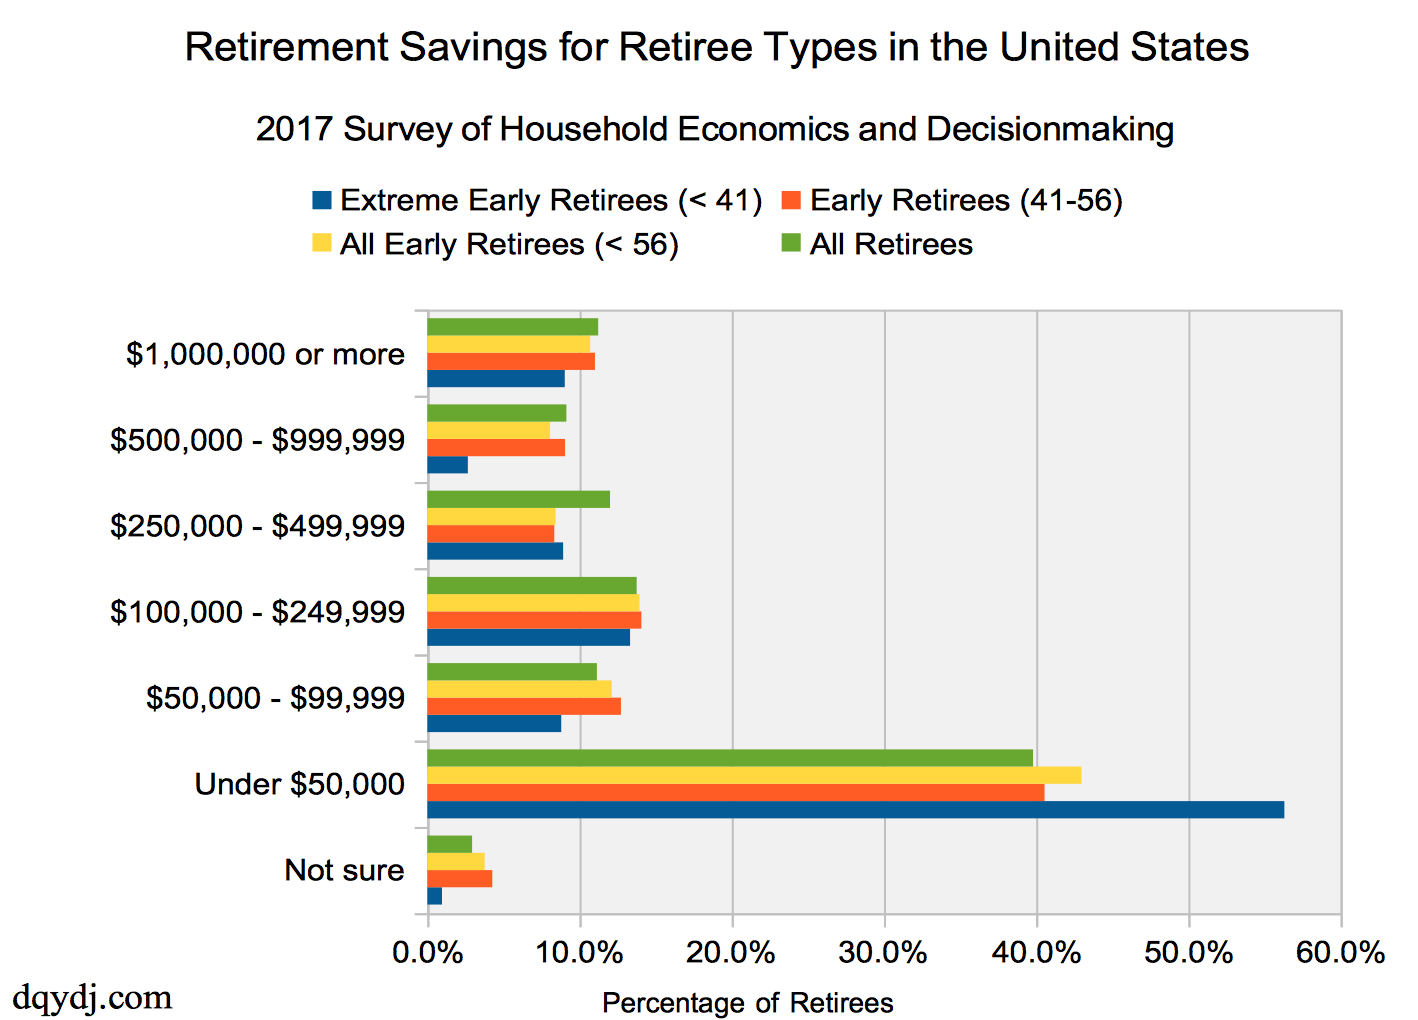 Early Retiree Savings by When Retired, Current American Retirees 2017